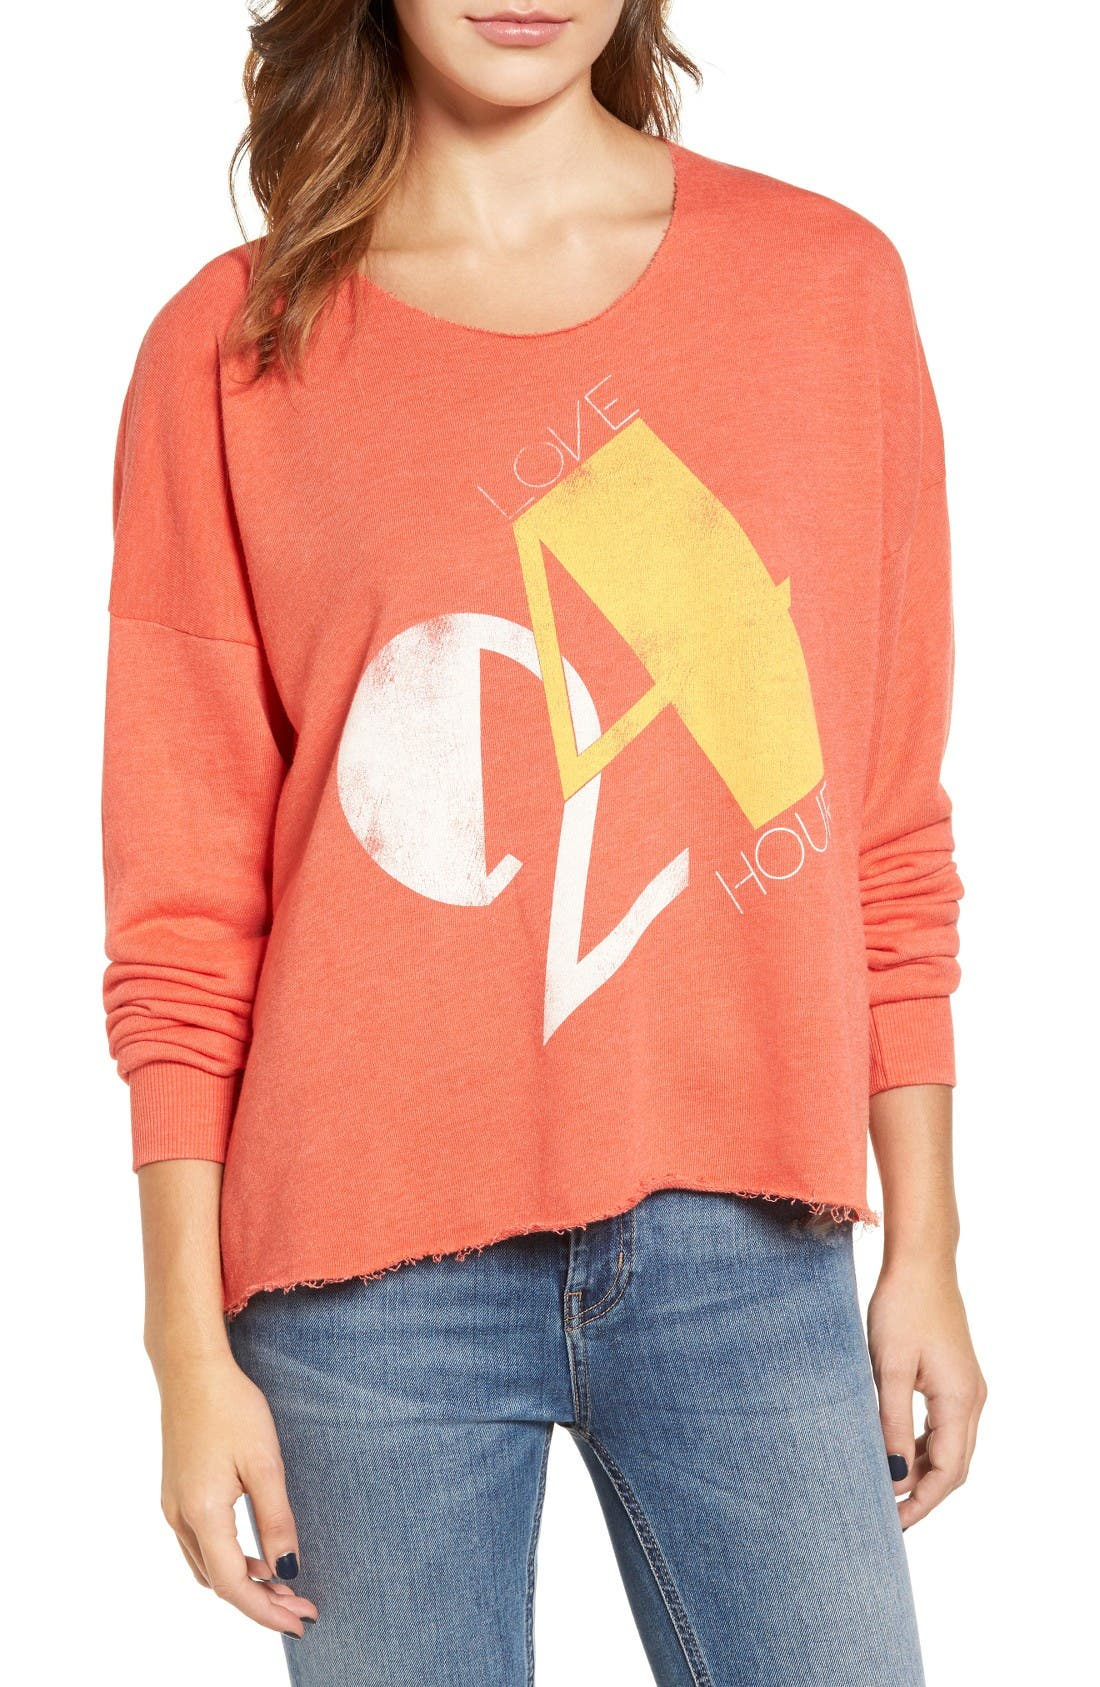 Love 24/7 Sweatshirt,                         Main,                         color, Electric Red